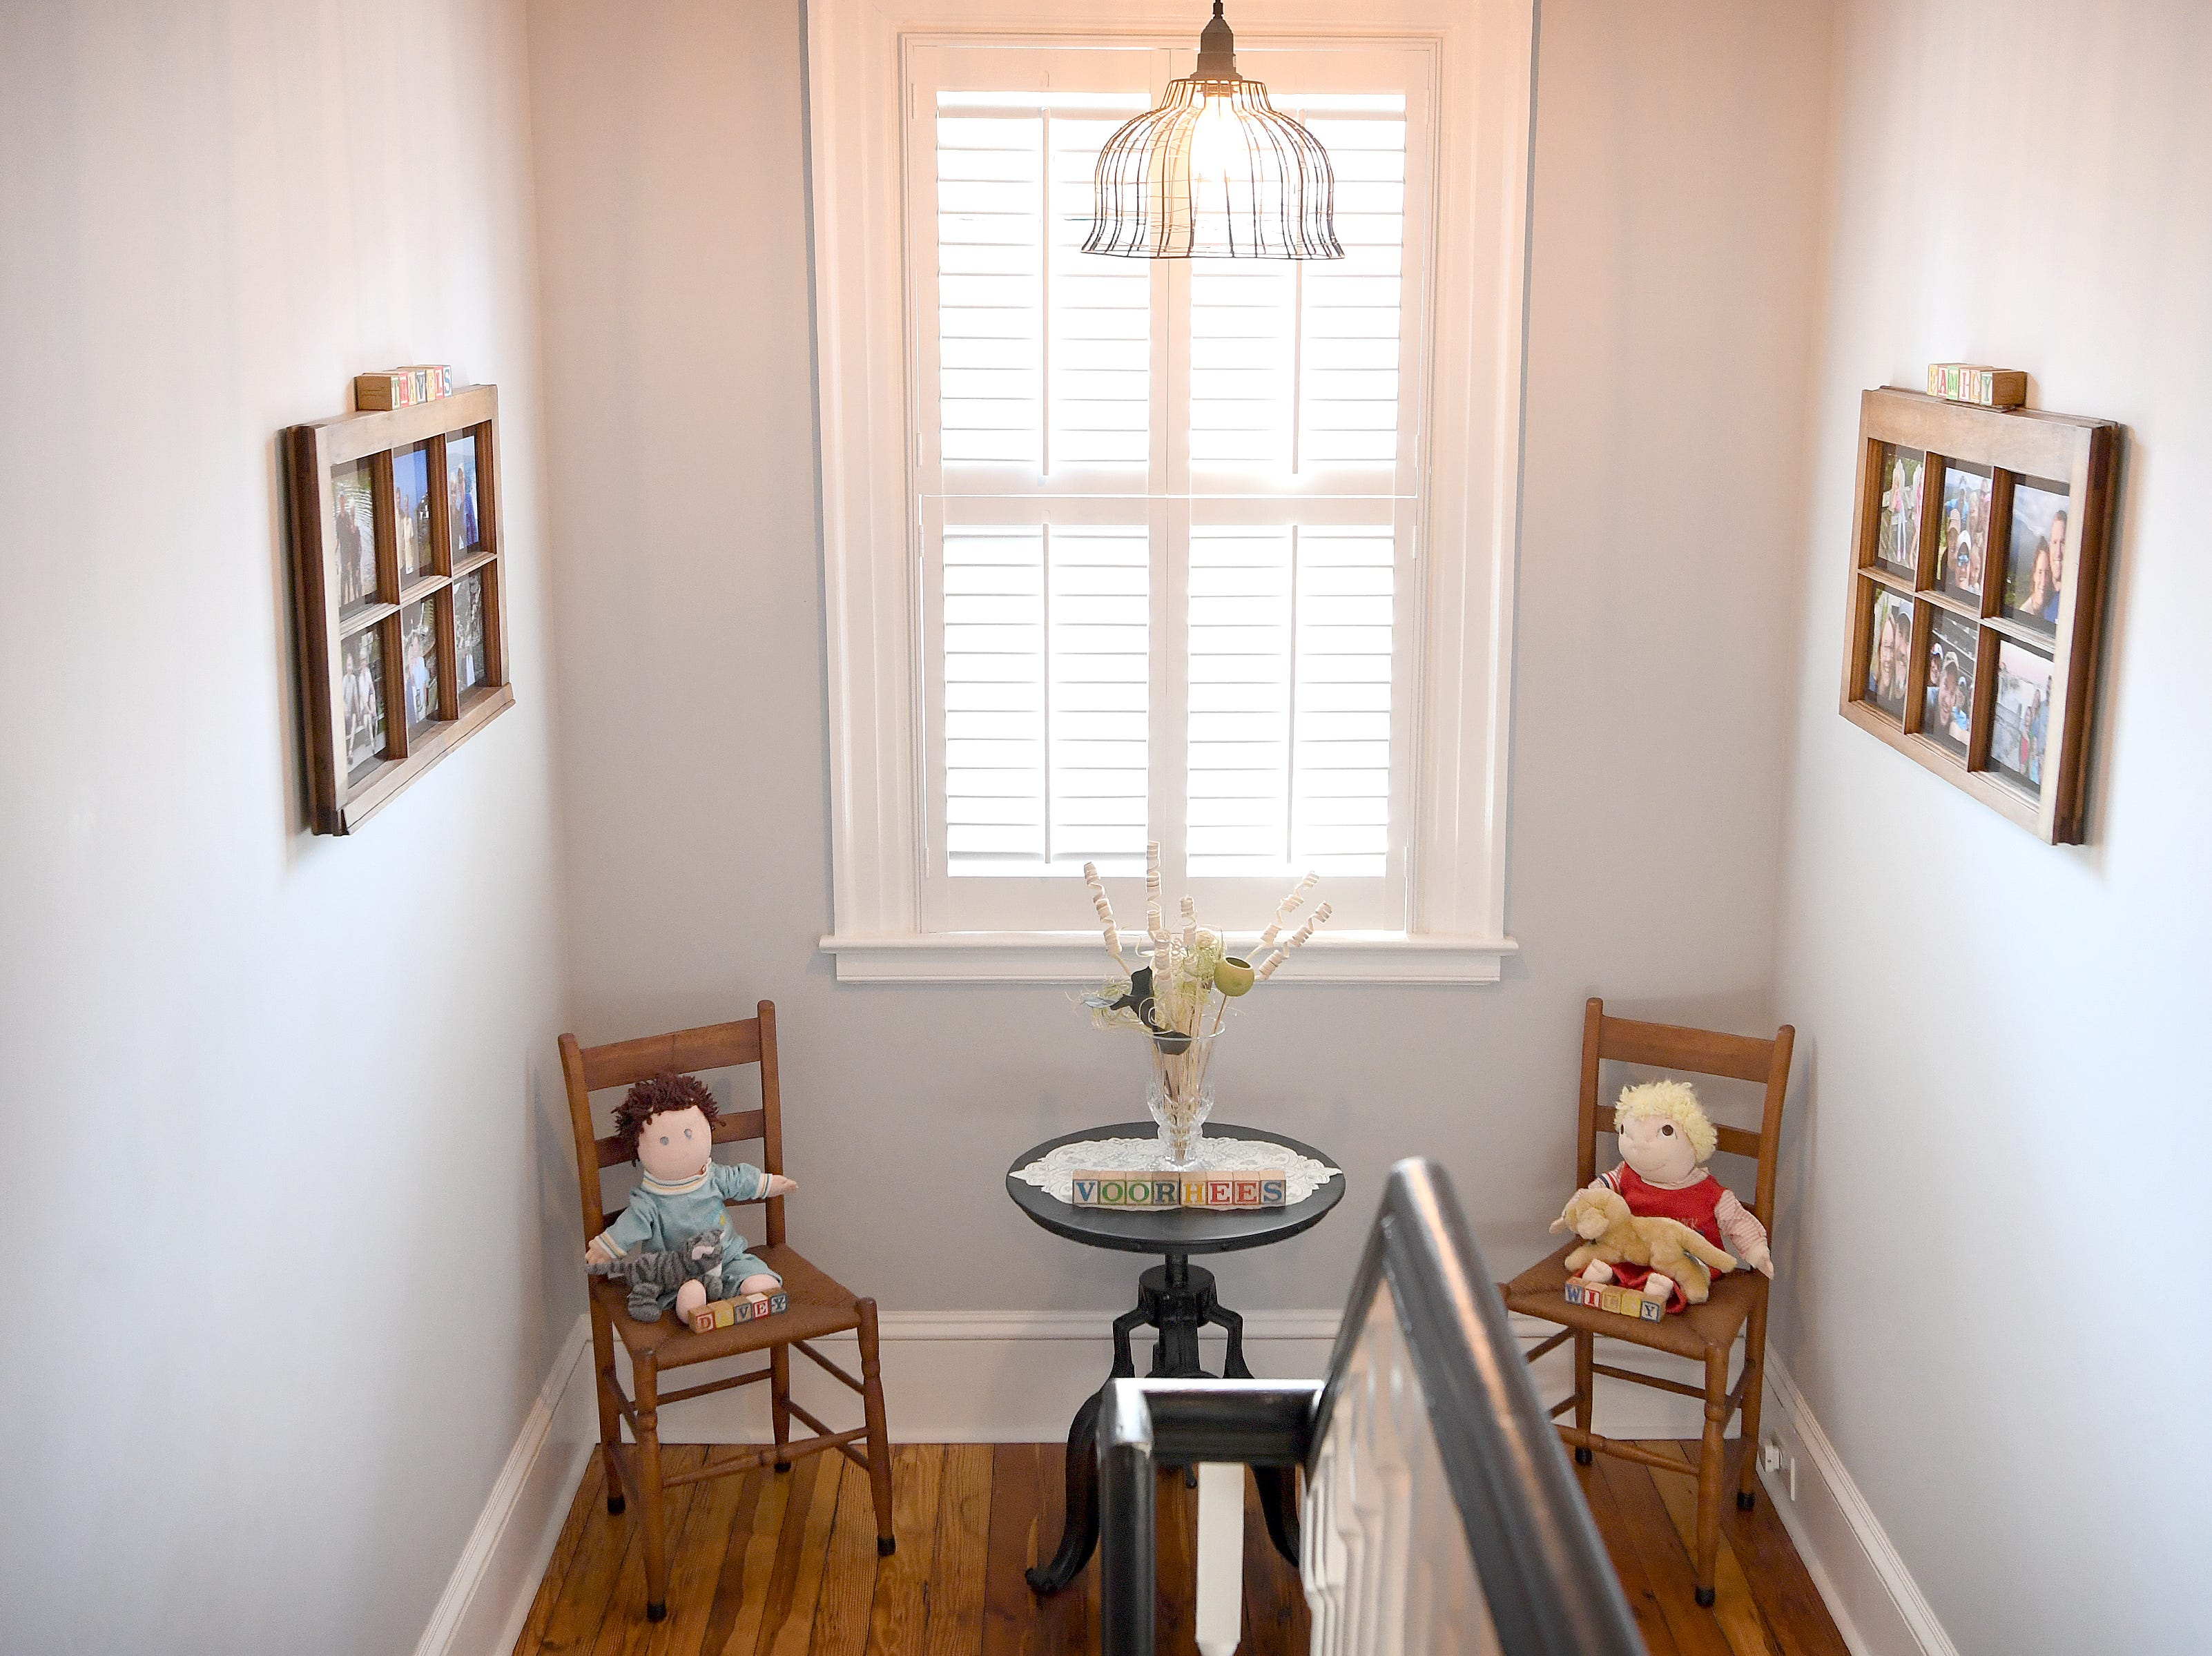 The first dolls owned by Linda and Marc Voorhees' children sit in antique chairs on a landing of the stairs leading to the second floor of their Montford home.